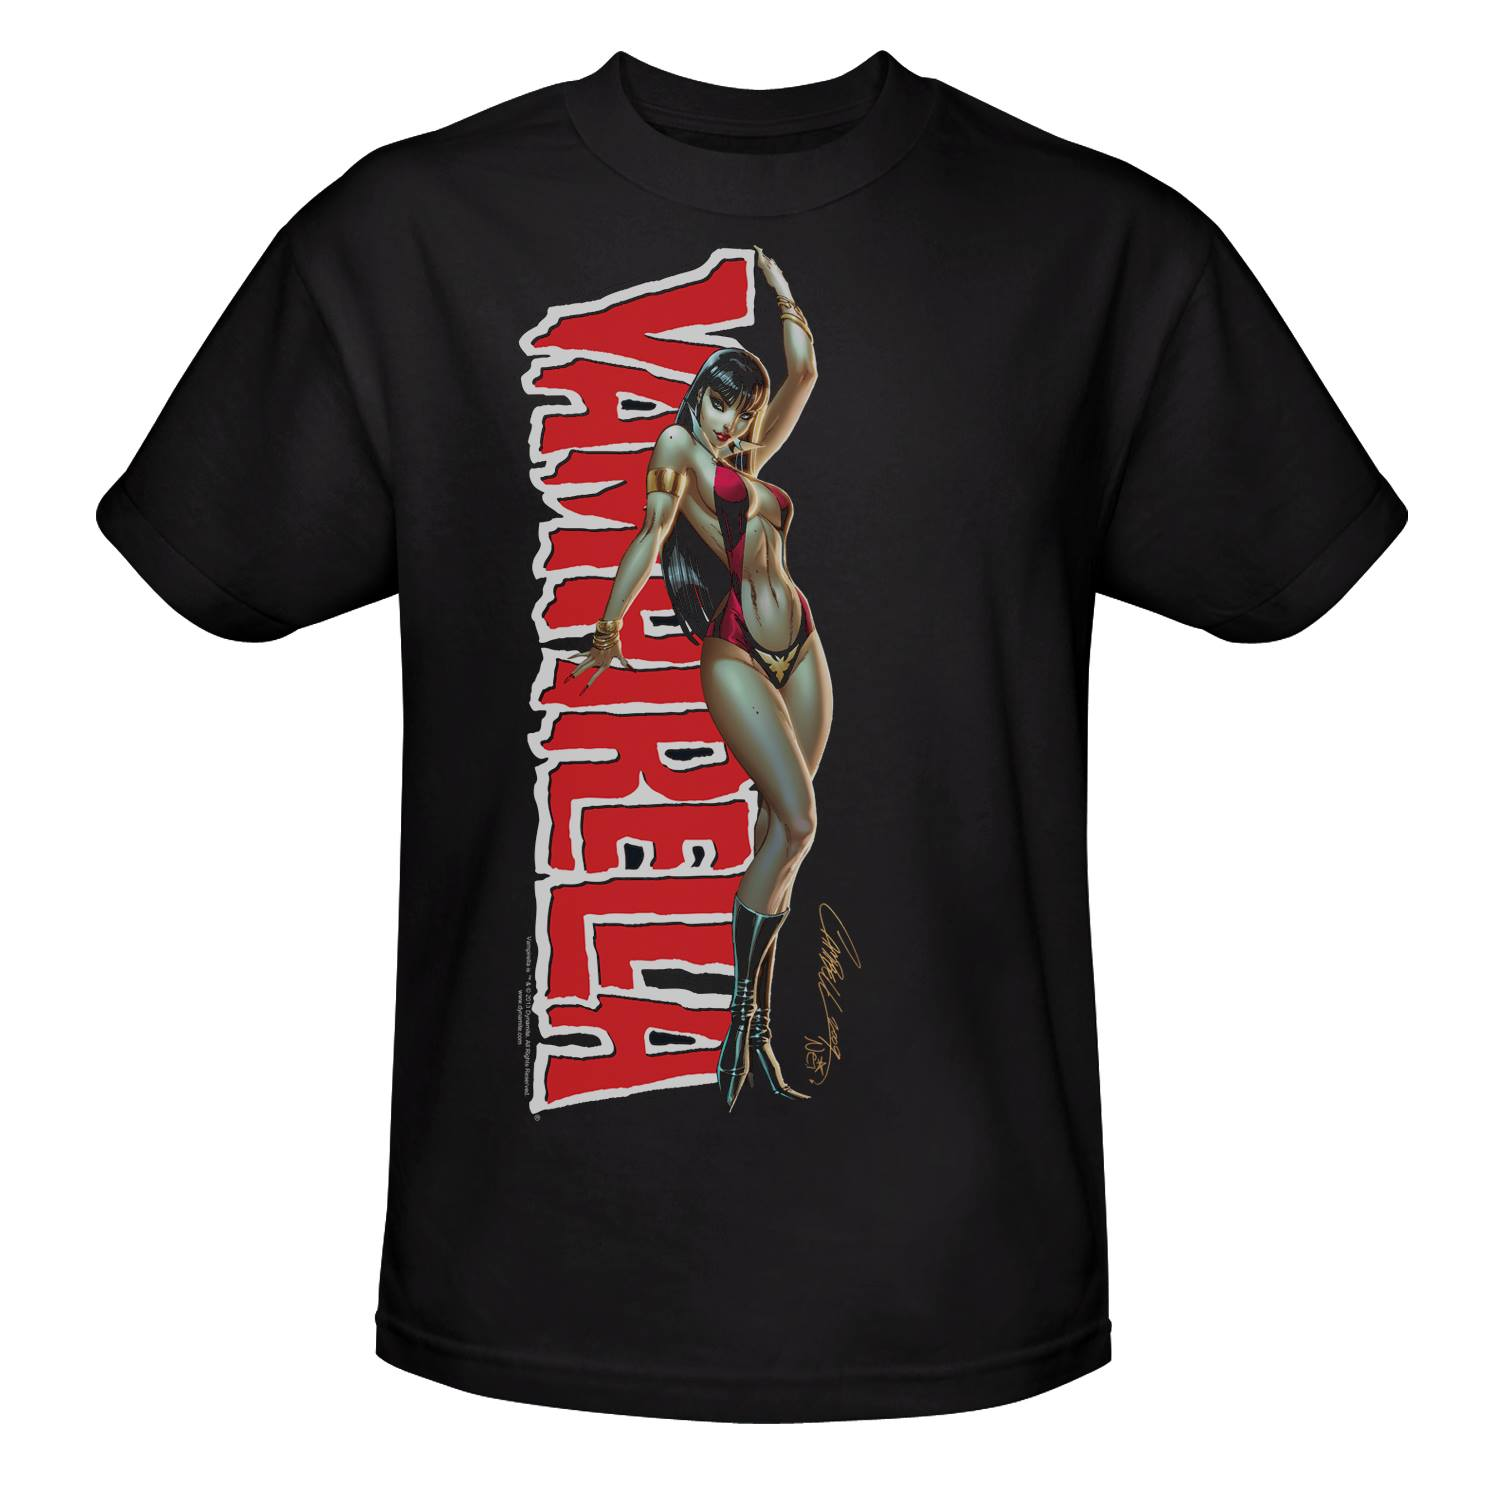 Vampirella Midtown exclusive t-shirt by J. Scott Campbell